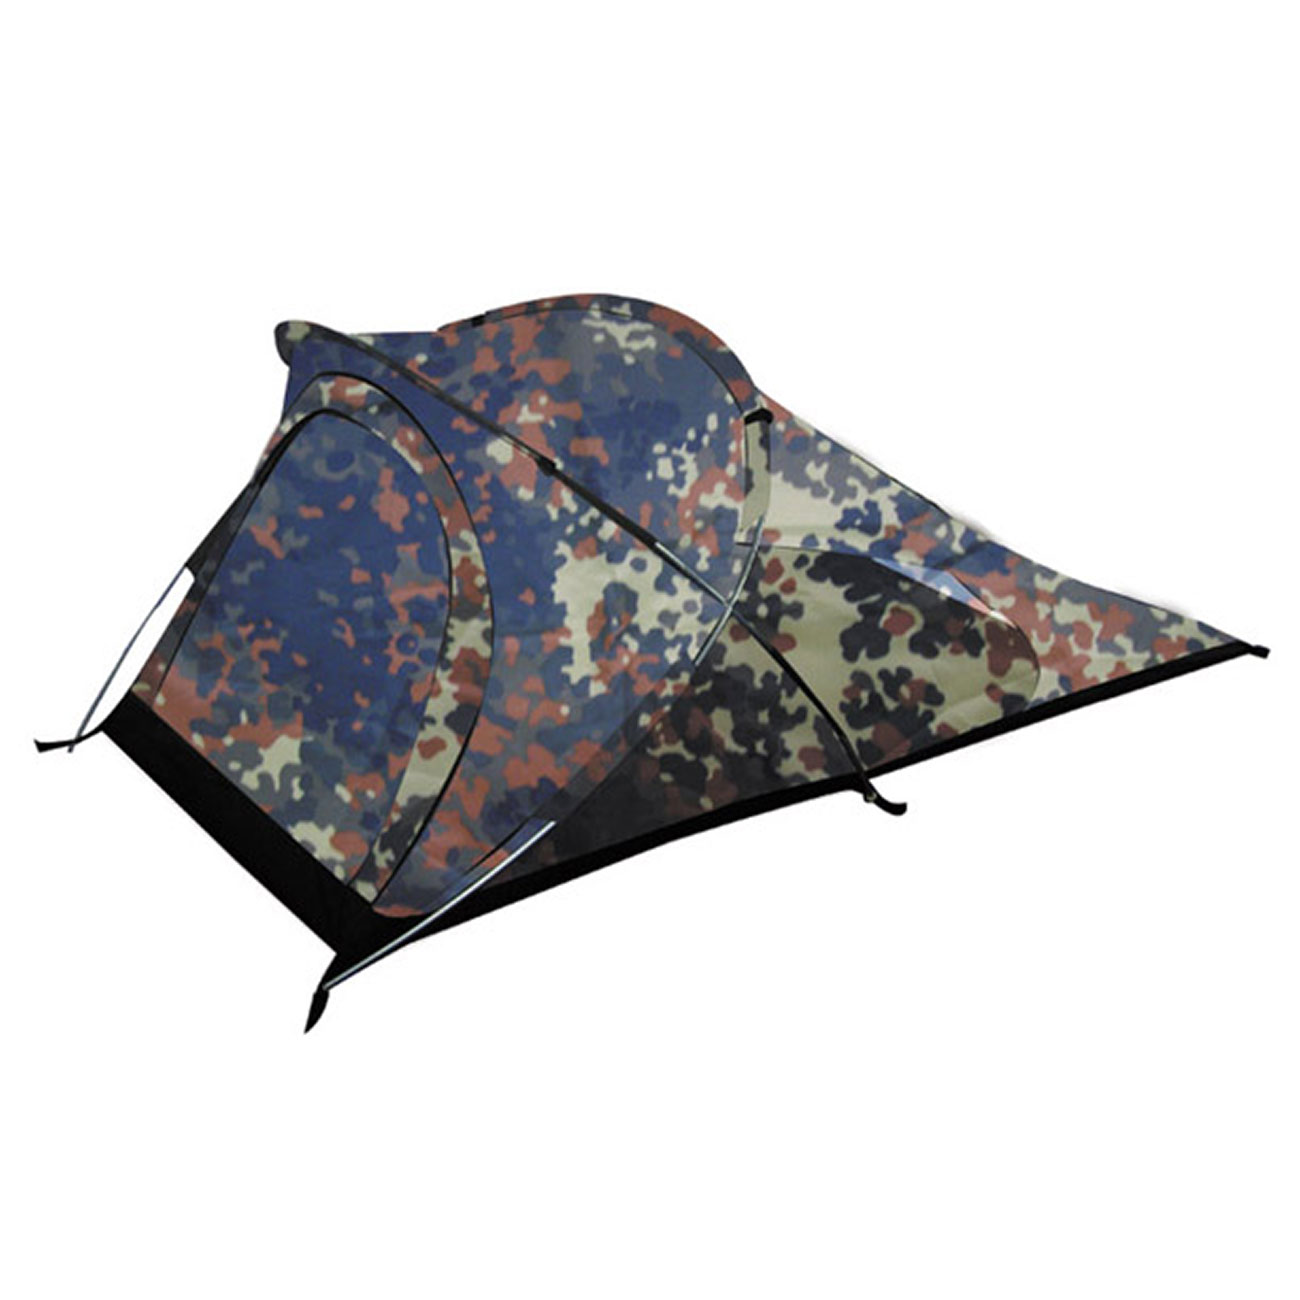 MFH Tunnelzelt Osser 1-Person flecktarn 1